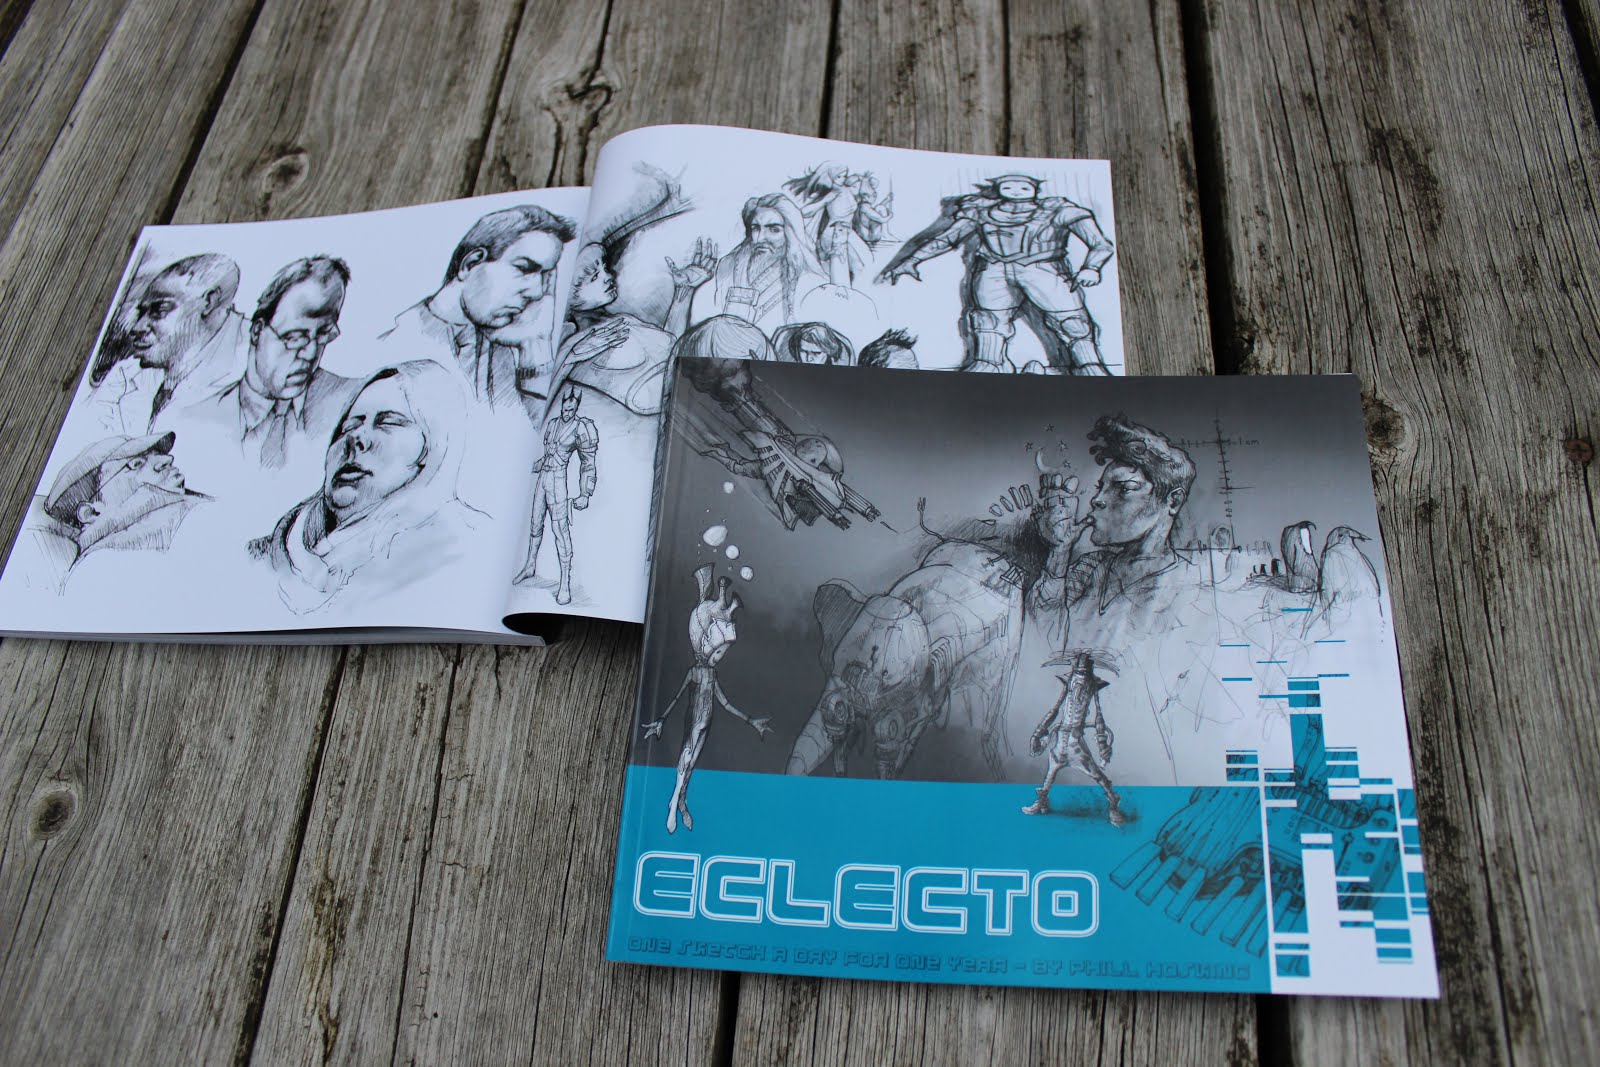 Eclecto sketchbook for sale